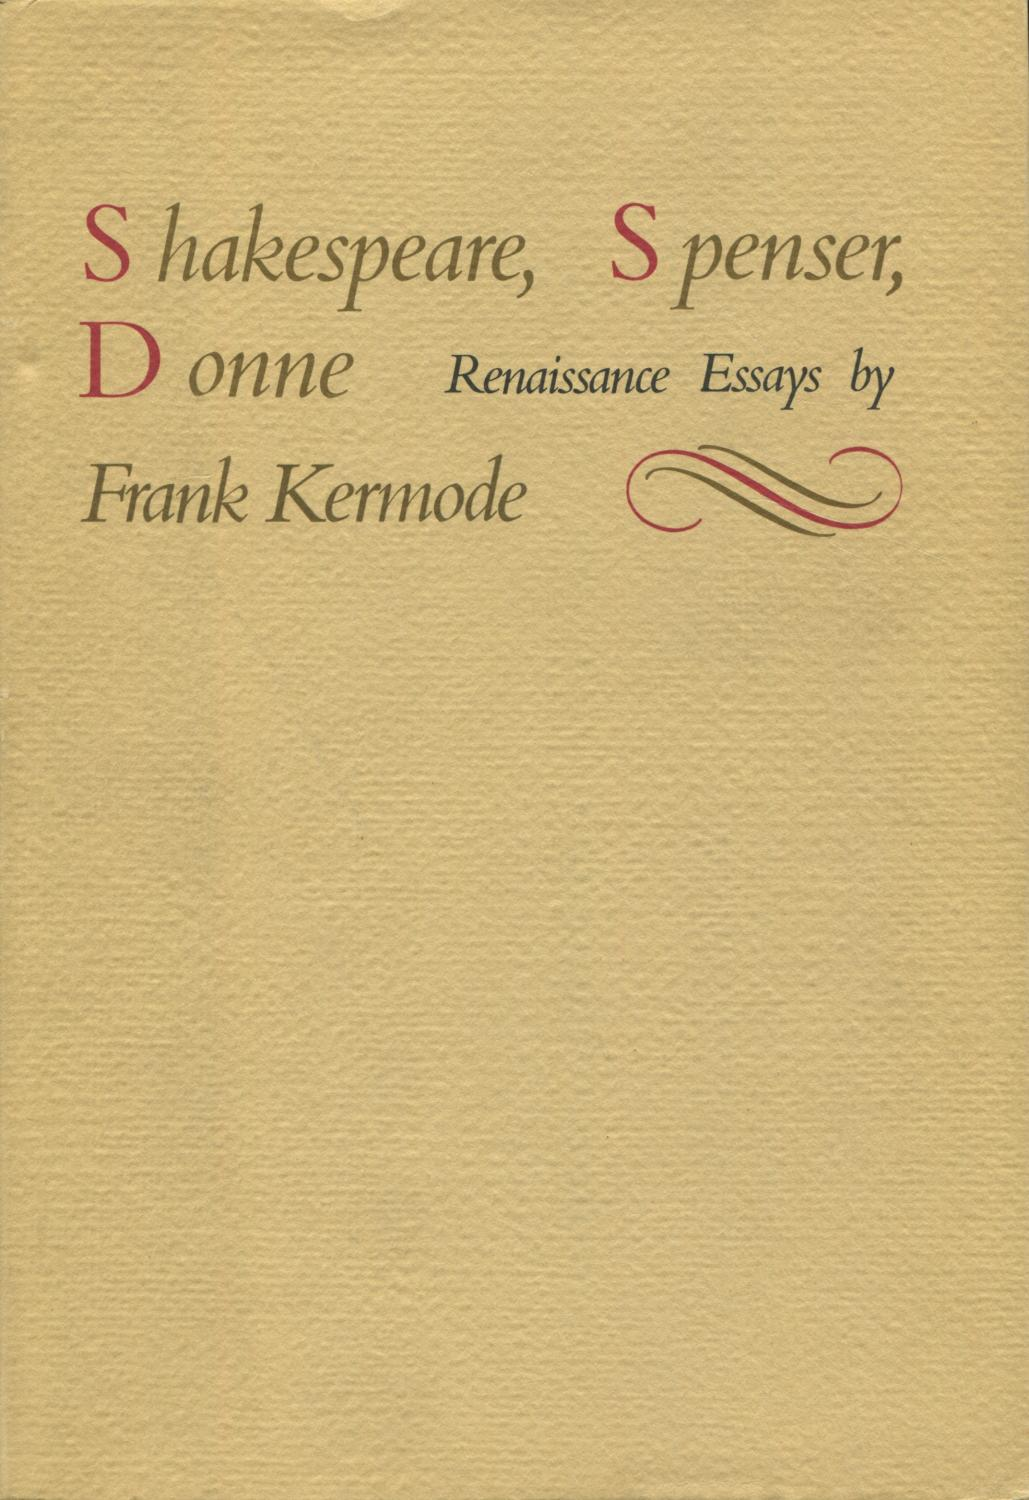 shakespeare spencer donne renaissance essays by kermode frank shakespeare spencer donne renaissance essays kermode frank